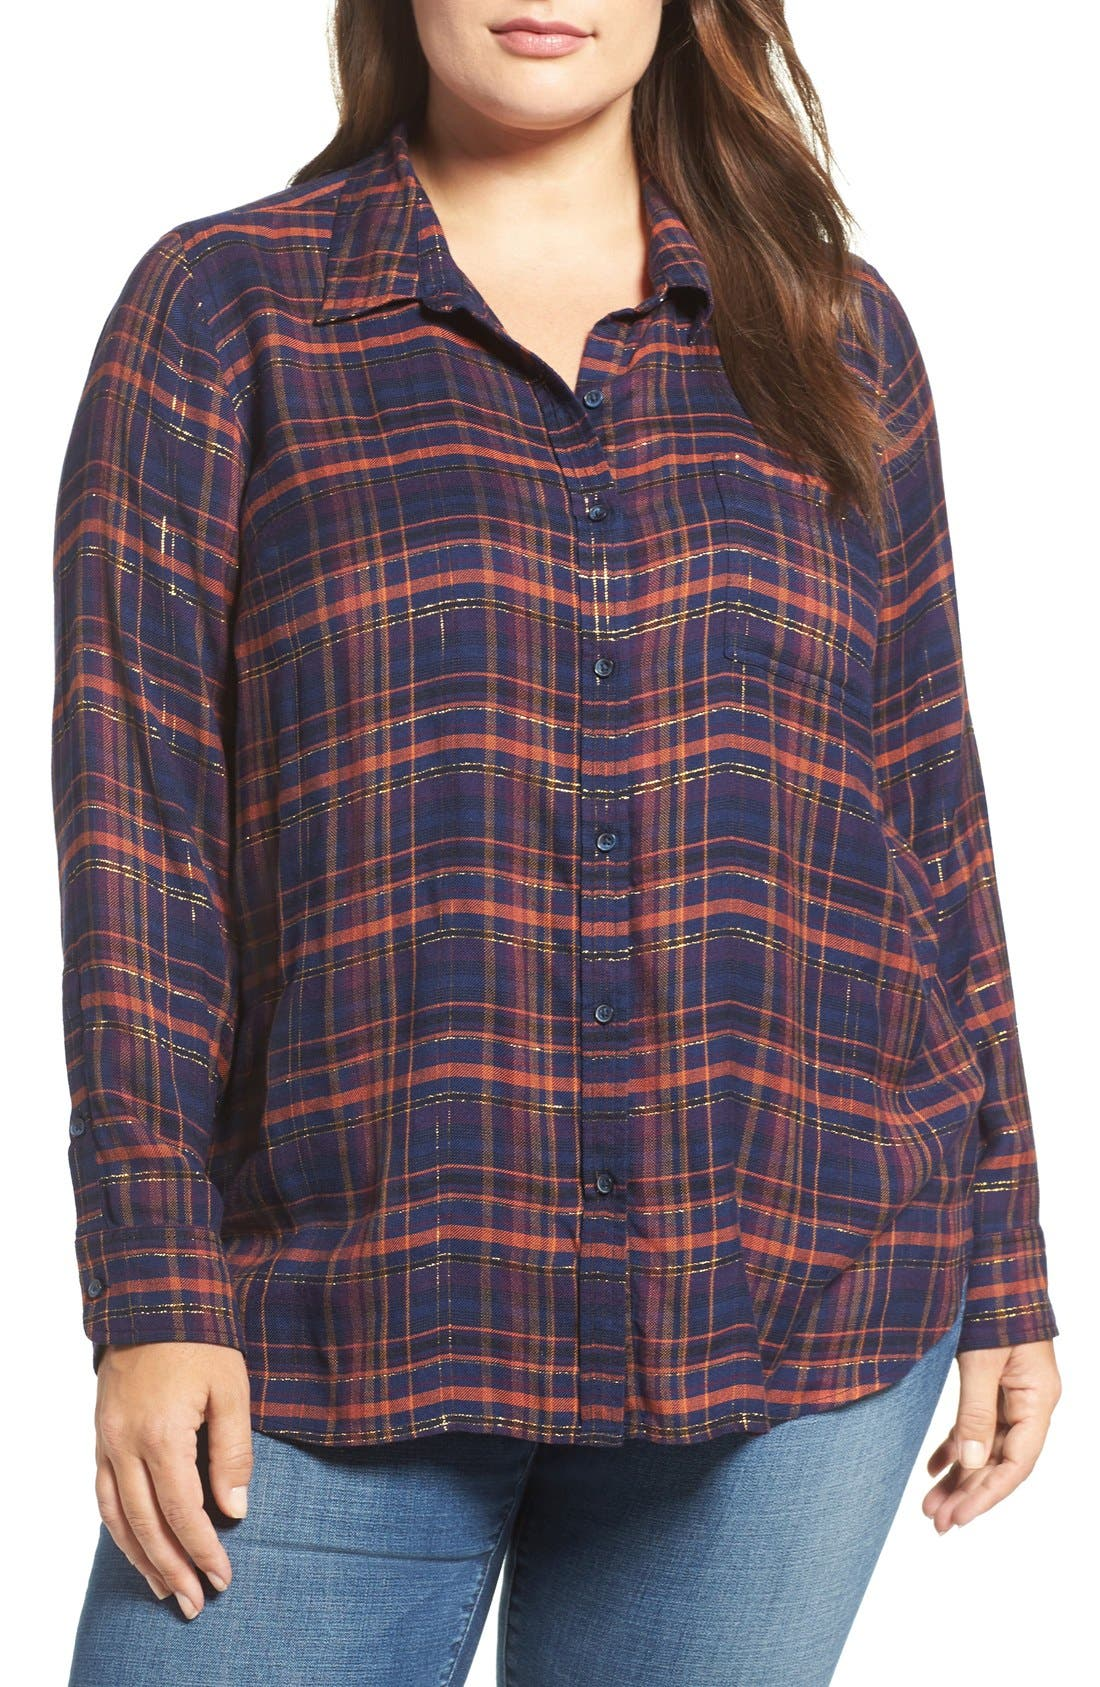 Back Overlay Plaid Shirt,                             Main thumbnail 1, color,                             460